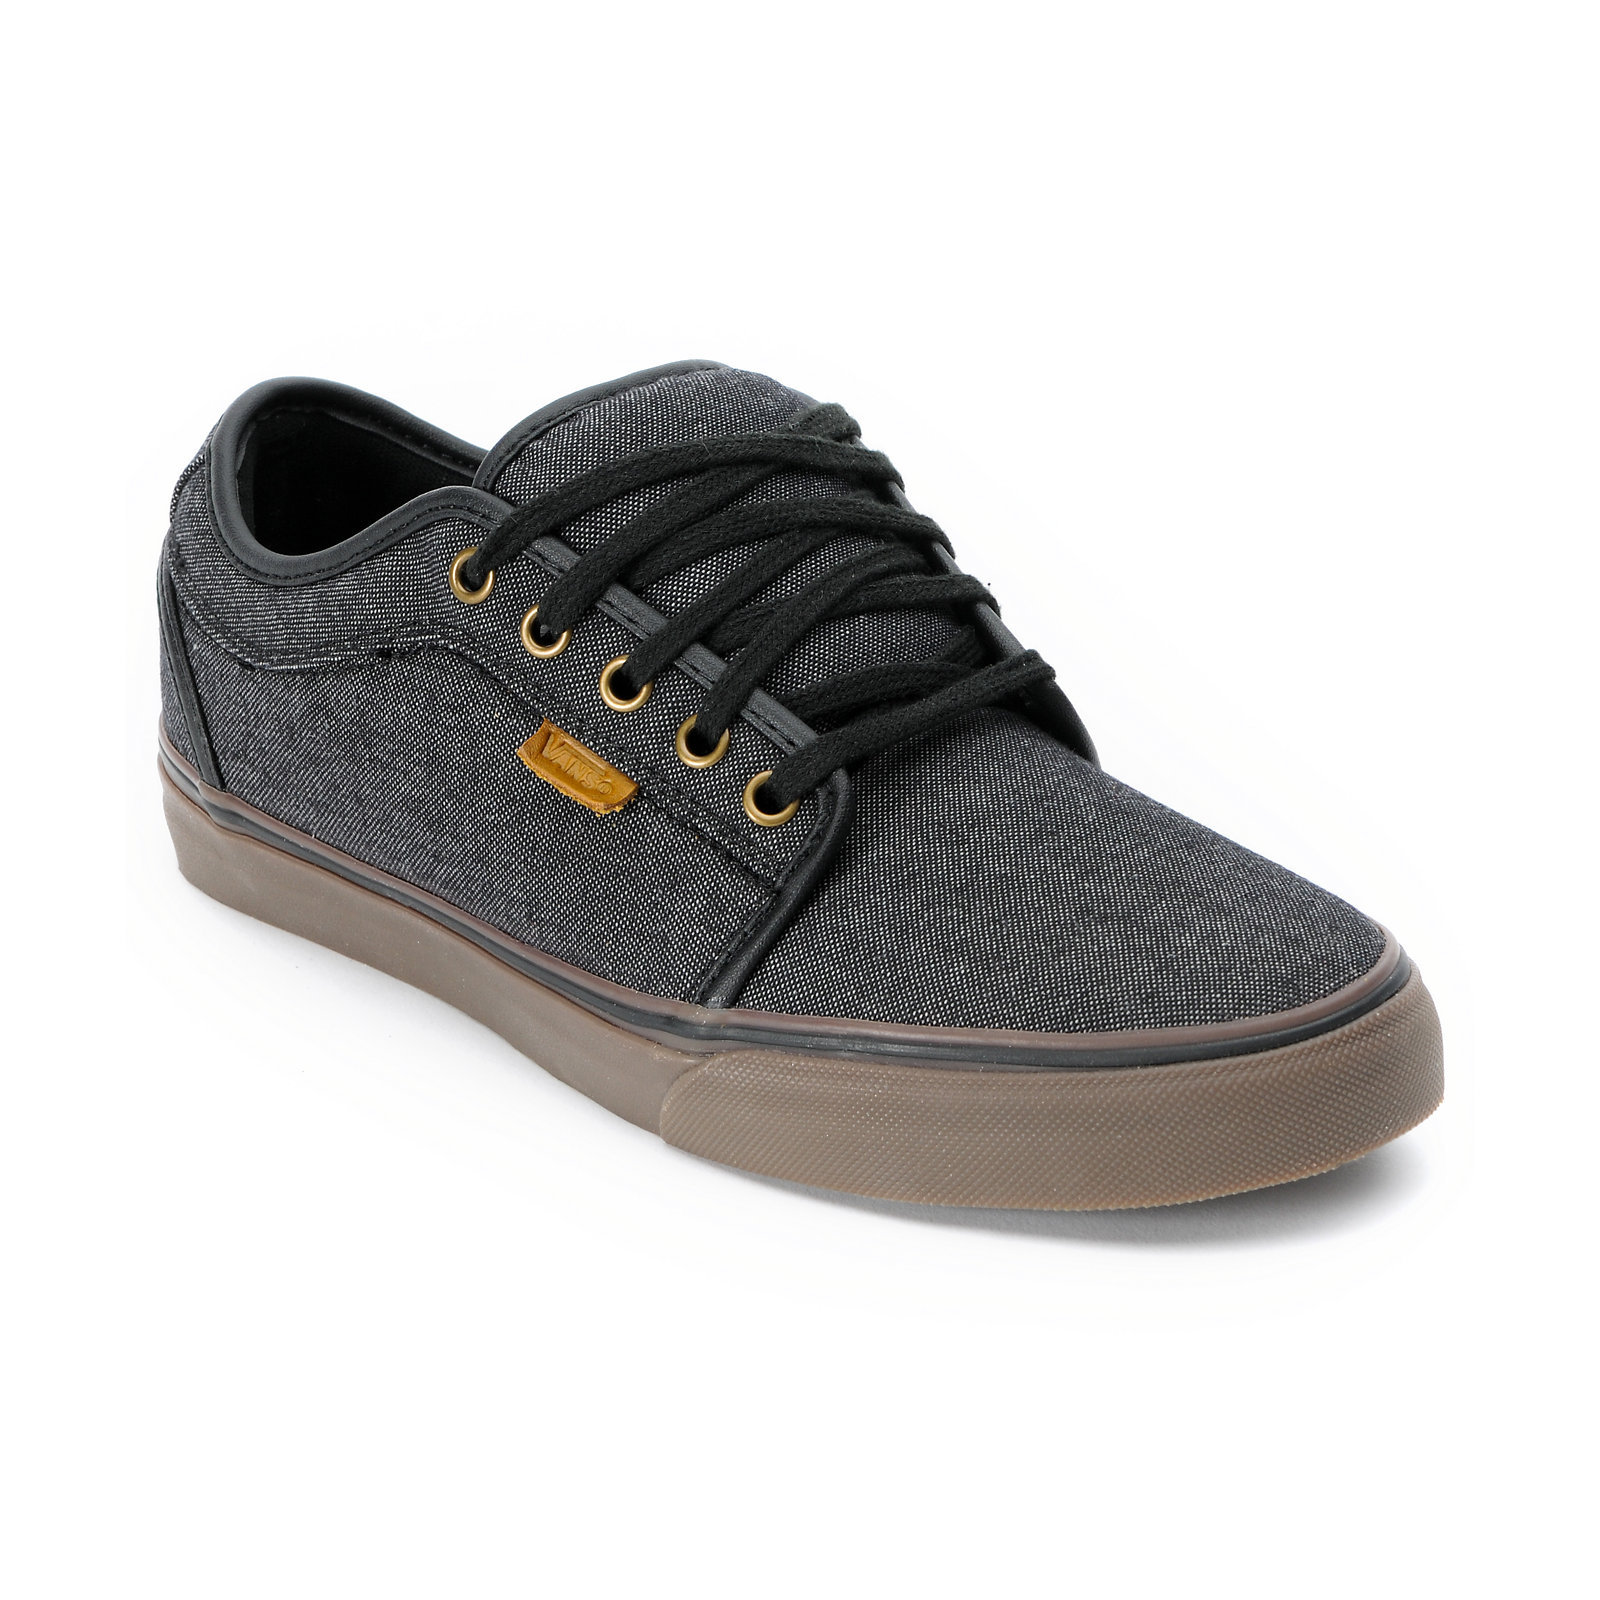 vans chukka low black canvas gum shoe from zumiez